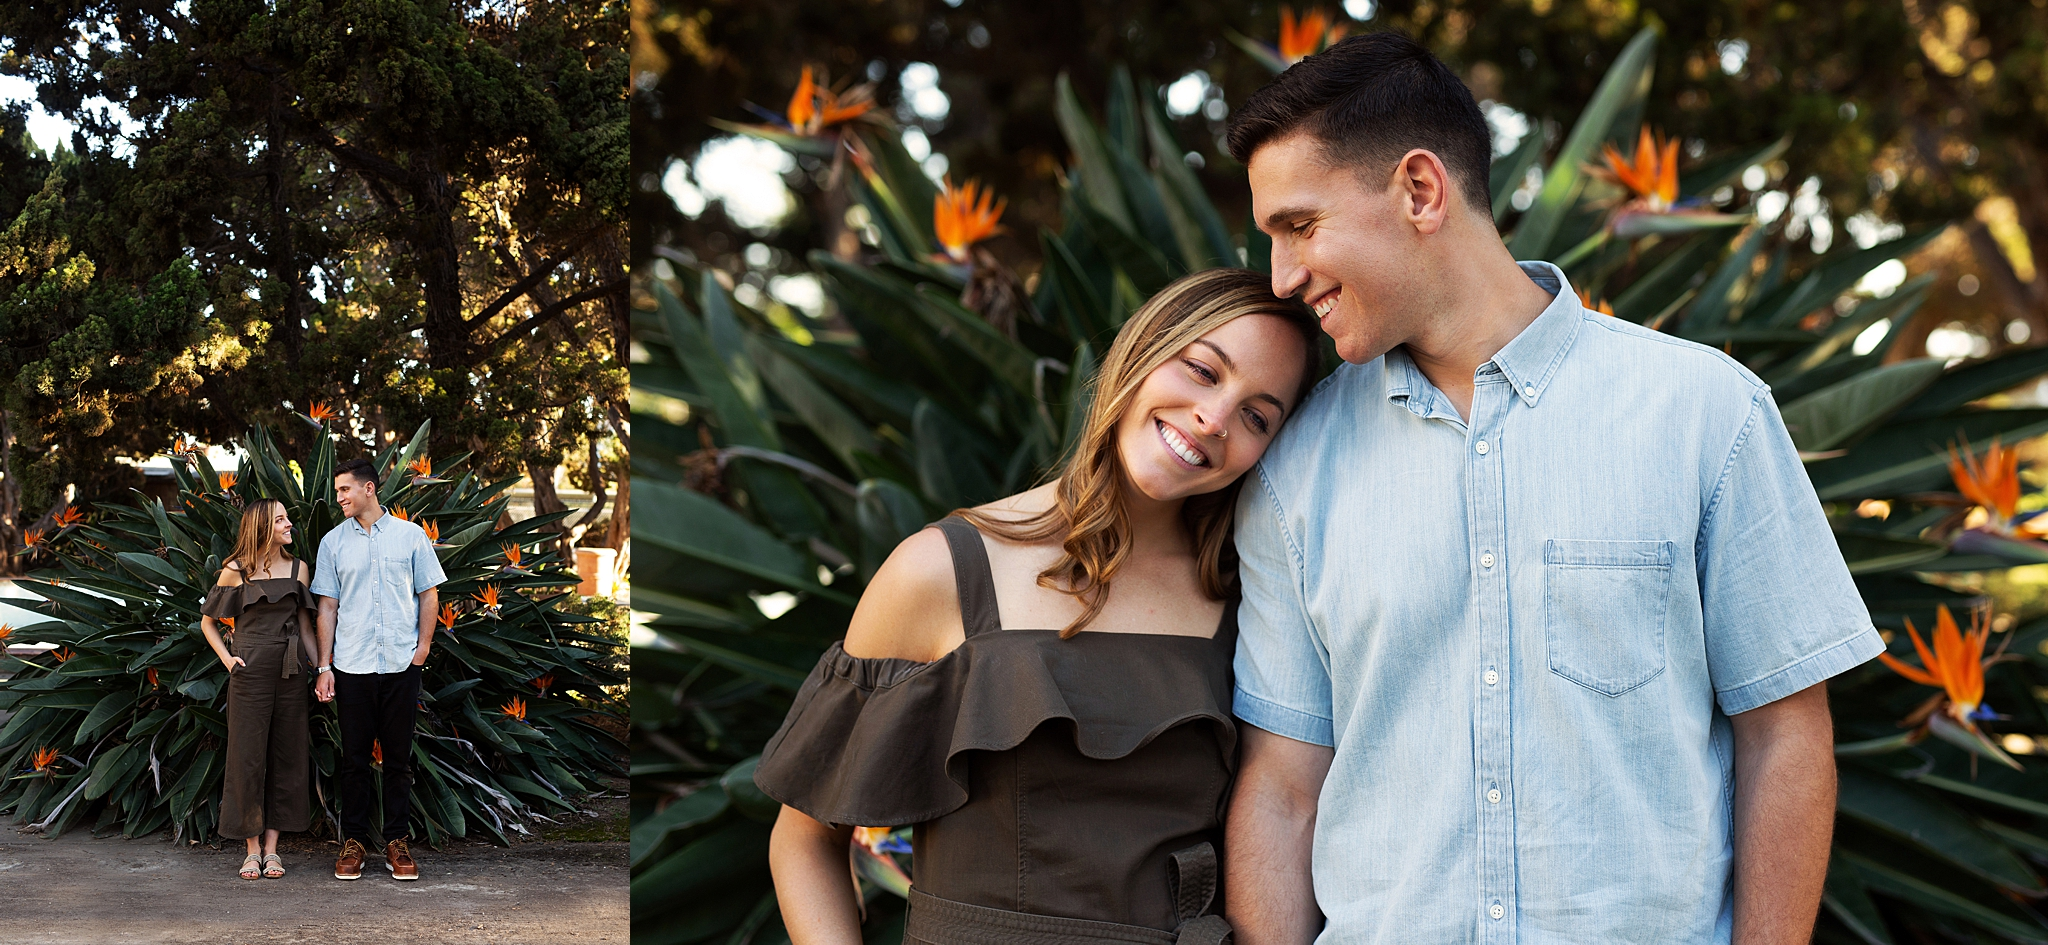 Golden hour engagement session at Balboa Park, San Diego, California. Meaghan and Eli pose in front of a giant bird of paradise bush